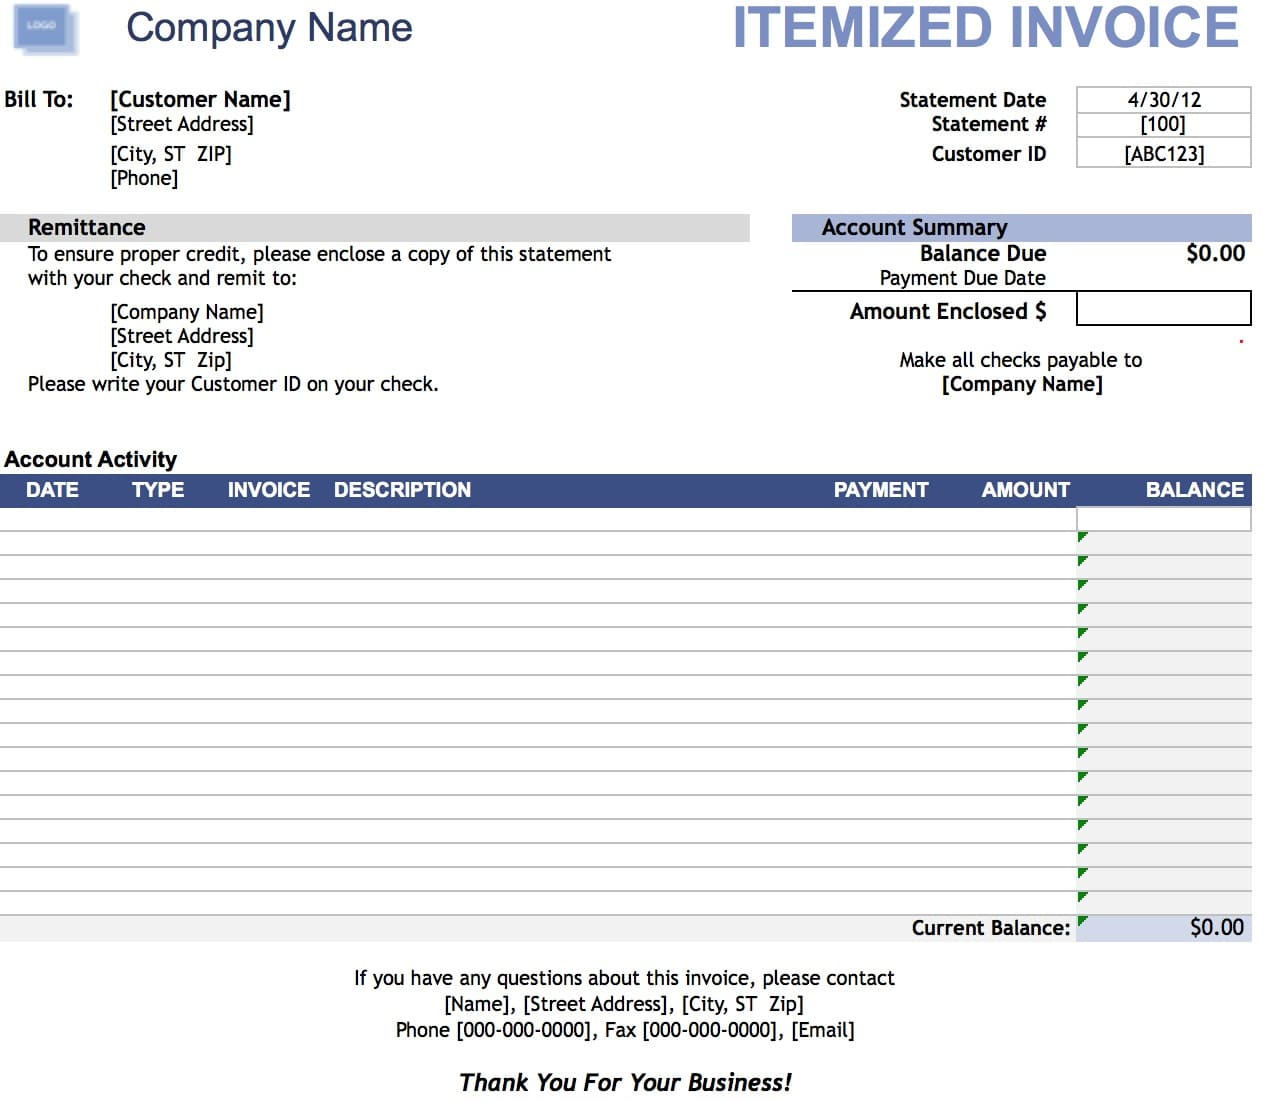 Free Itemized Invoice Template Excel PDF Word Doc - Invoice example word for service business